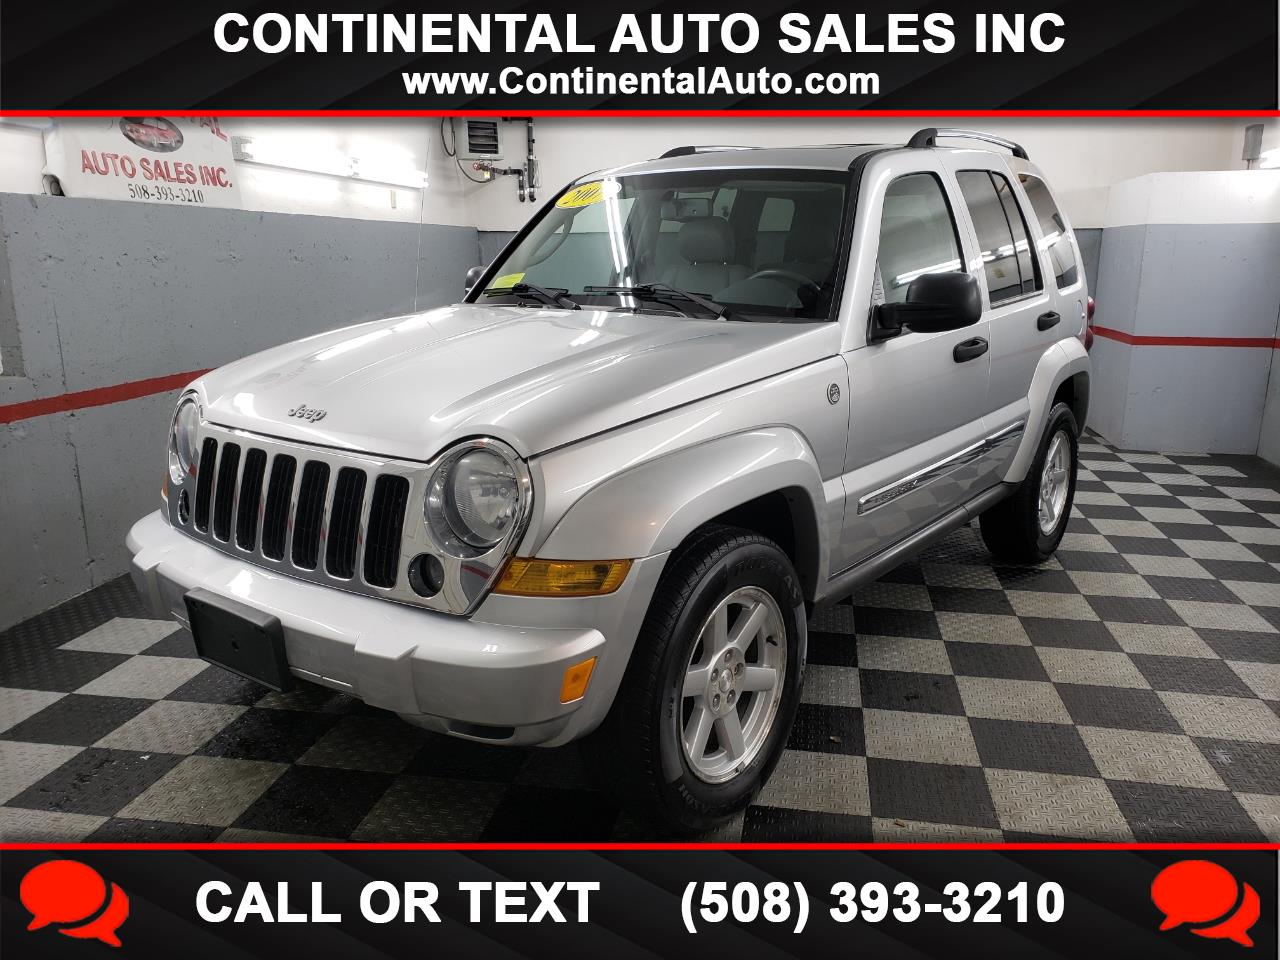 2007 Jeep Liberty 4WD 4dr Limited